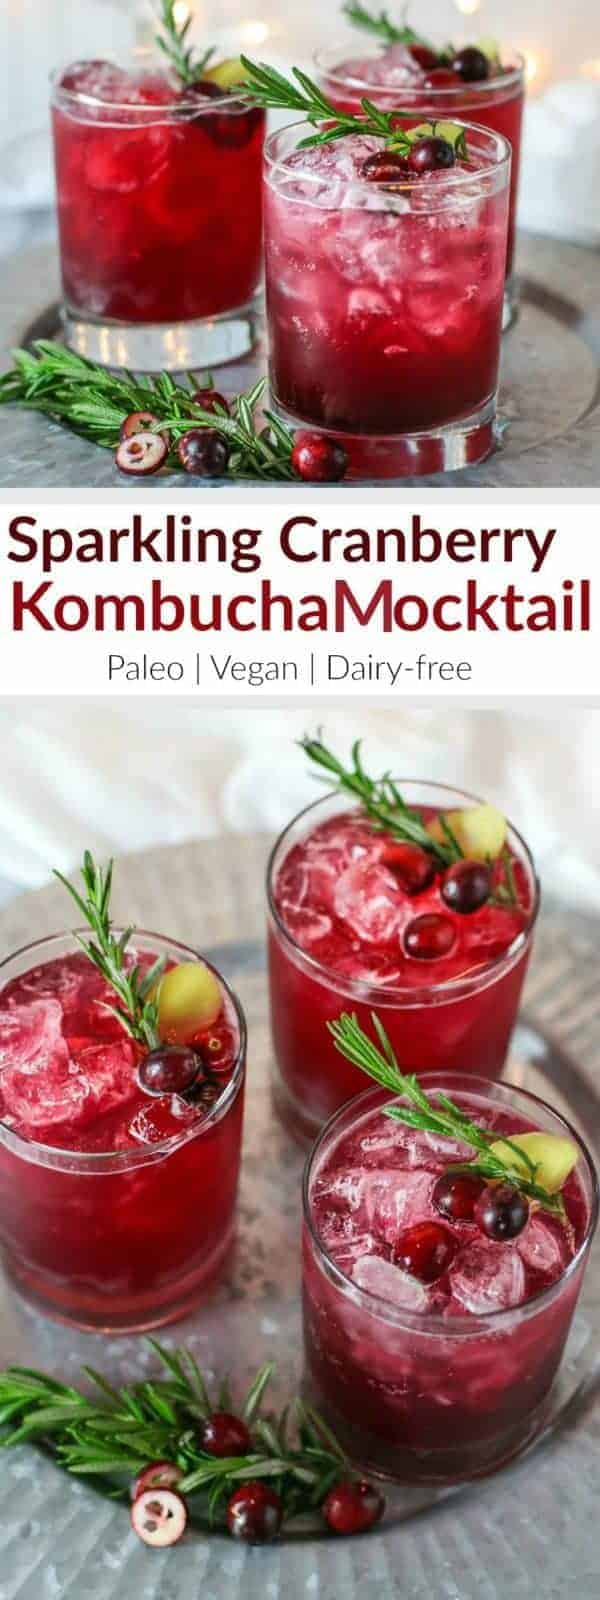 Sparkling Cranberry Kombucha Mocktail | healthy holiday drink recipes | holiday mocktail recipes | non-alcoholic holiday drinks | cranberry drink recipes | paleo holiday drinks | vegan holiday drinks | dairy-free holiday drinks || The Real Food Dietitians #holidaydrinks #mocktails #cranberrydrinks #holidayrecipes